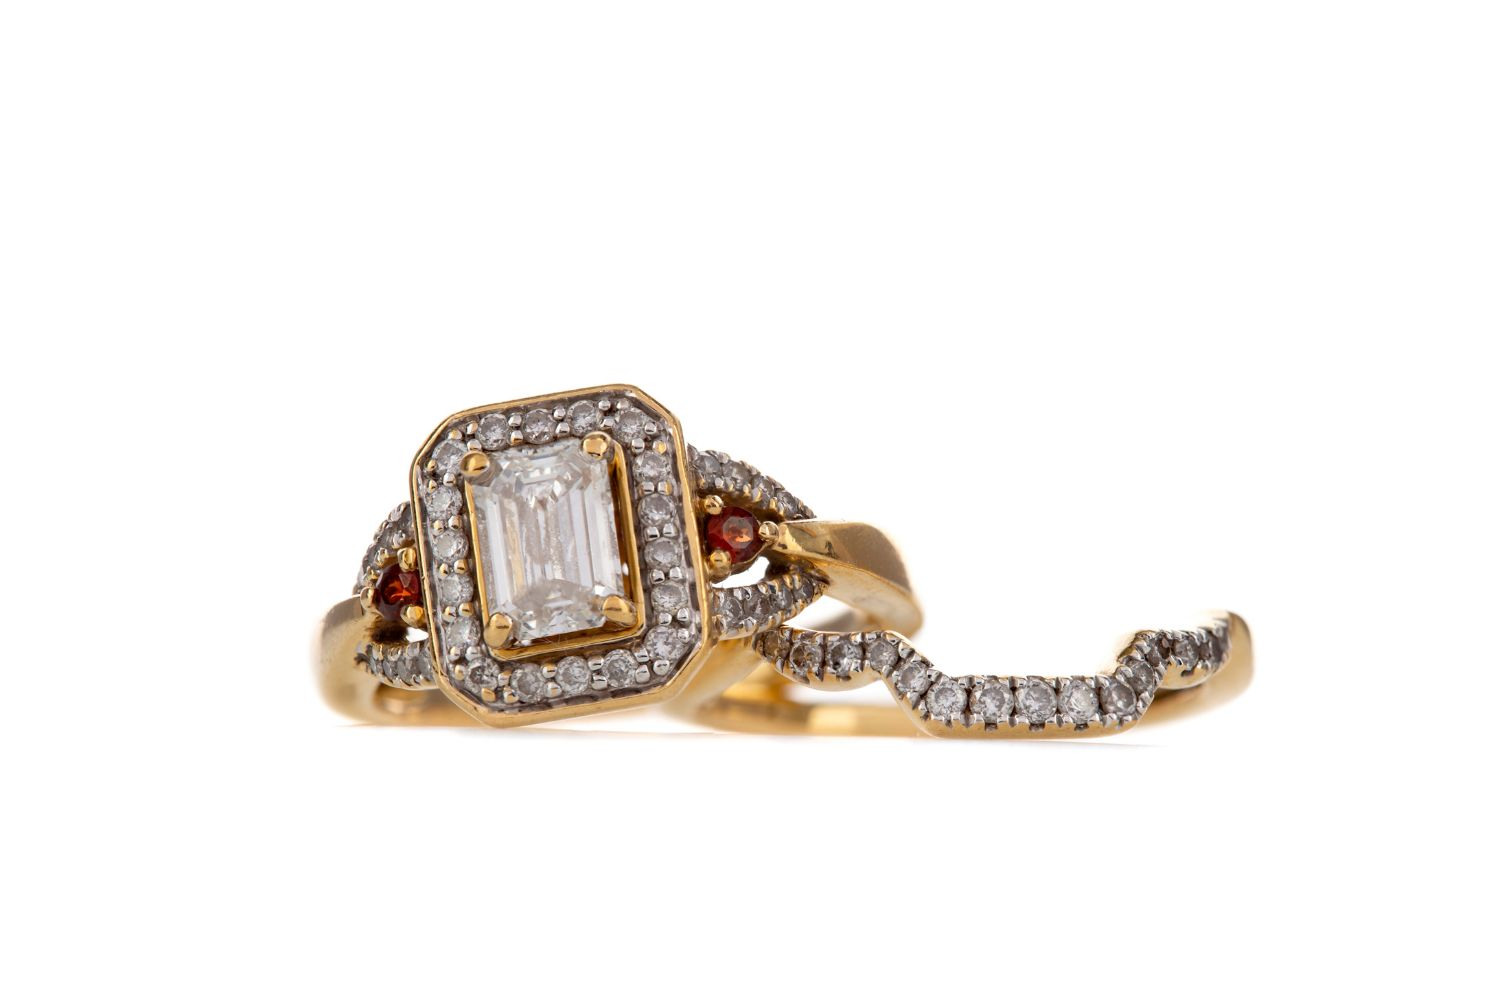 The Jewellery Auction - McTear's